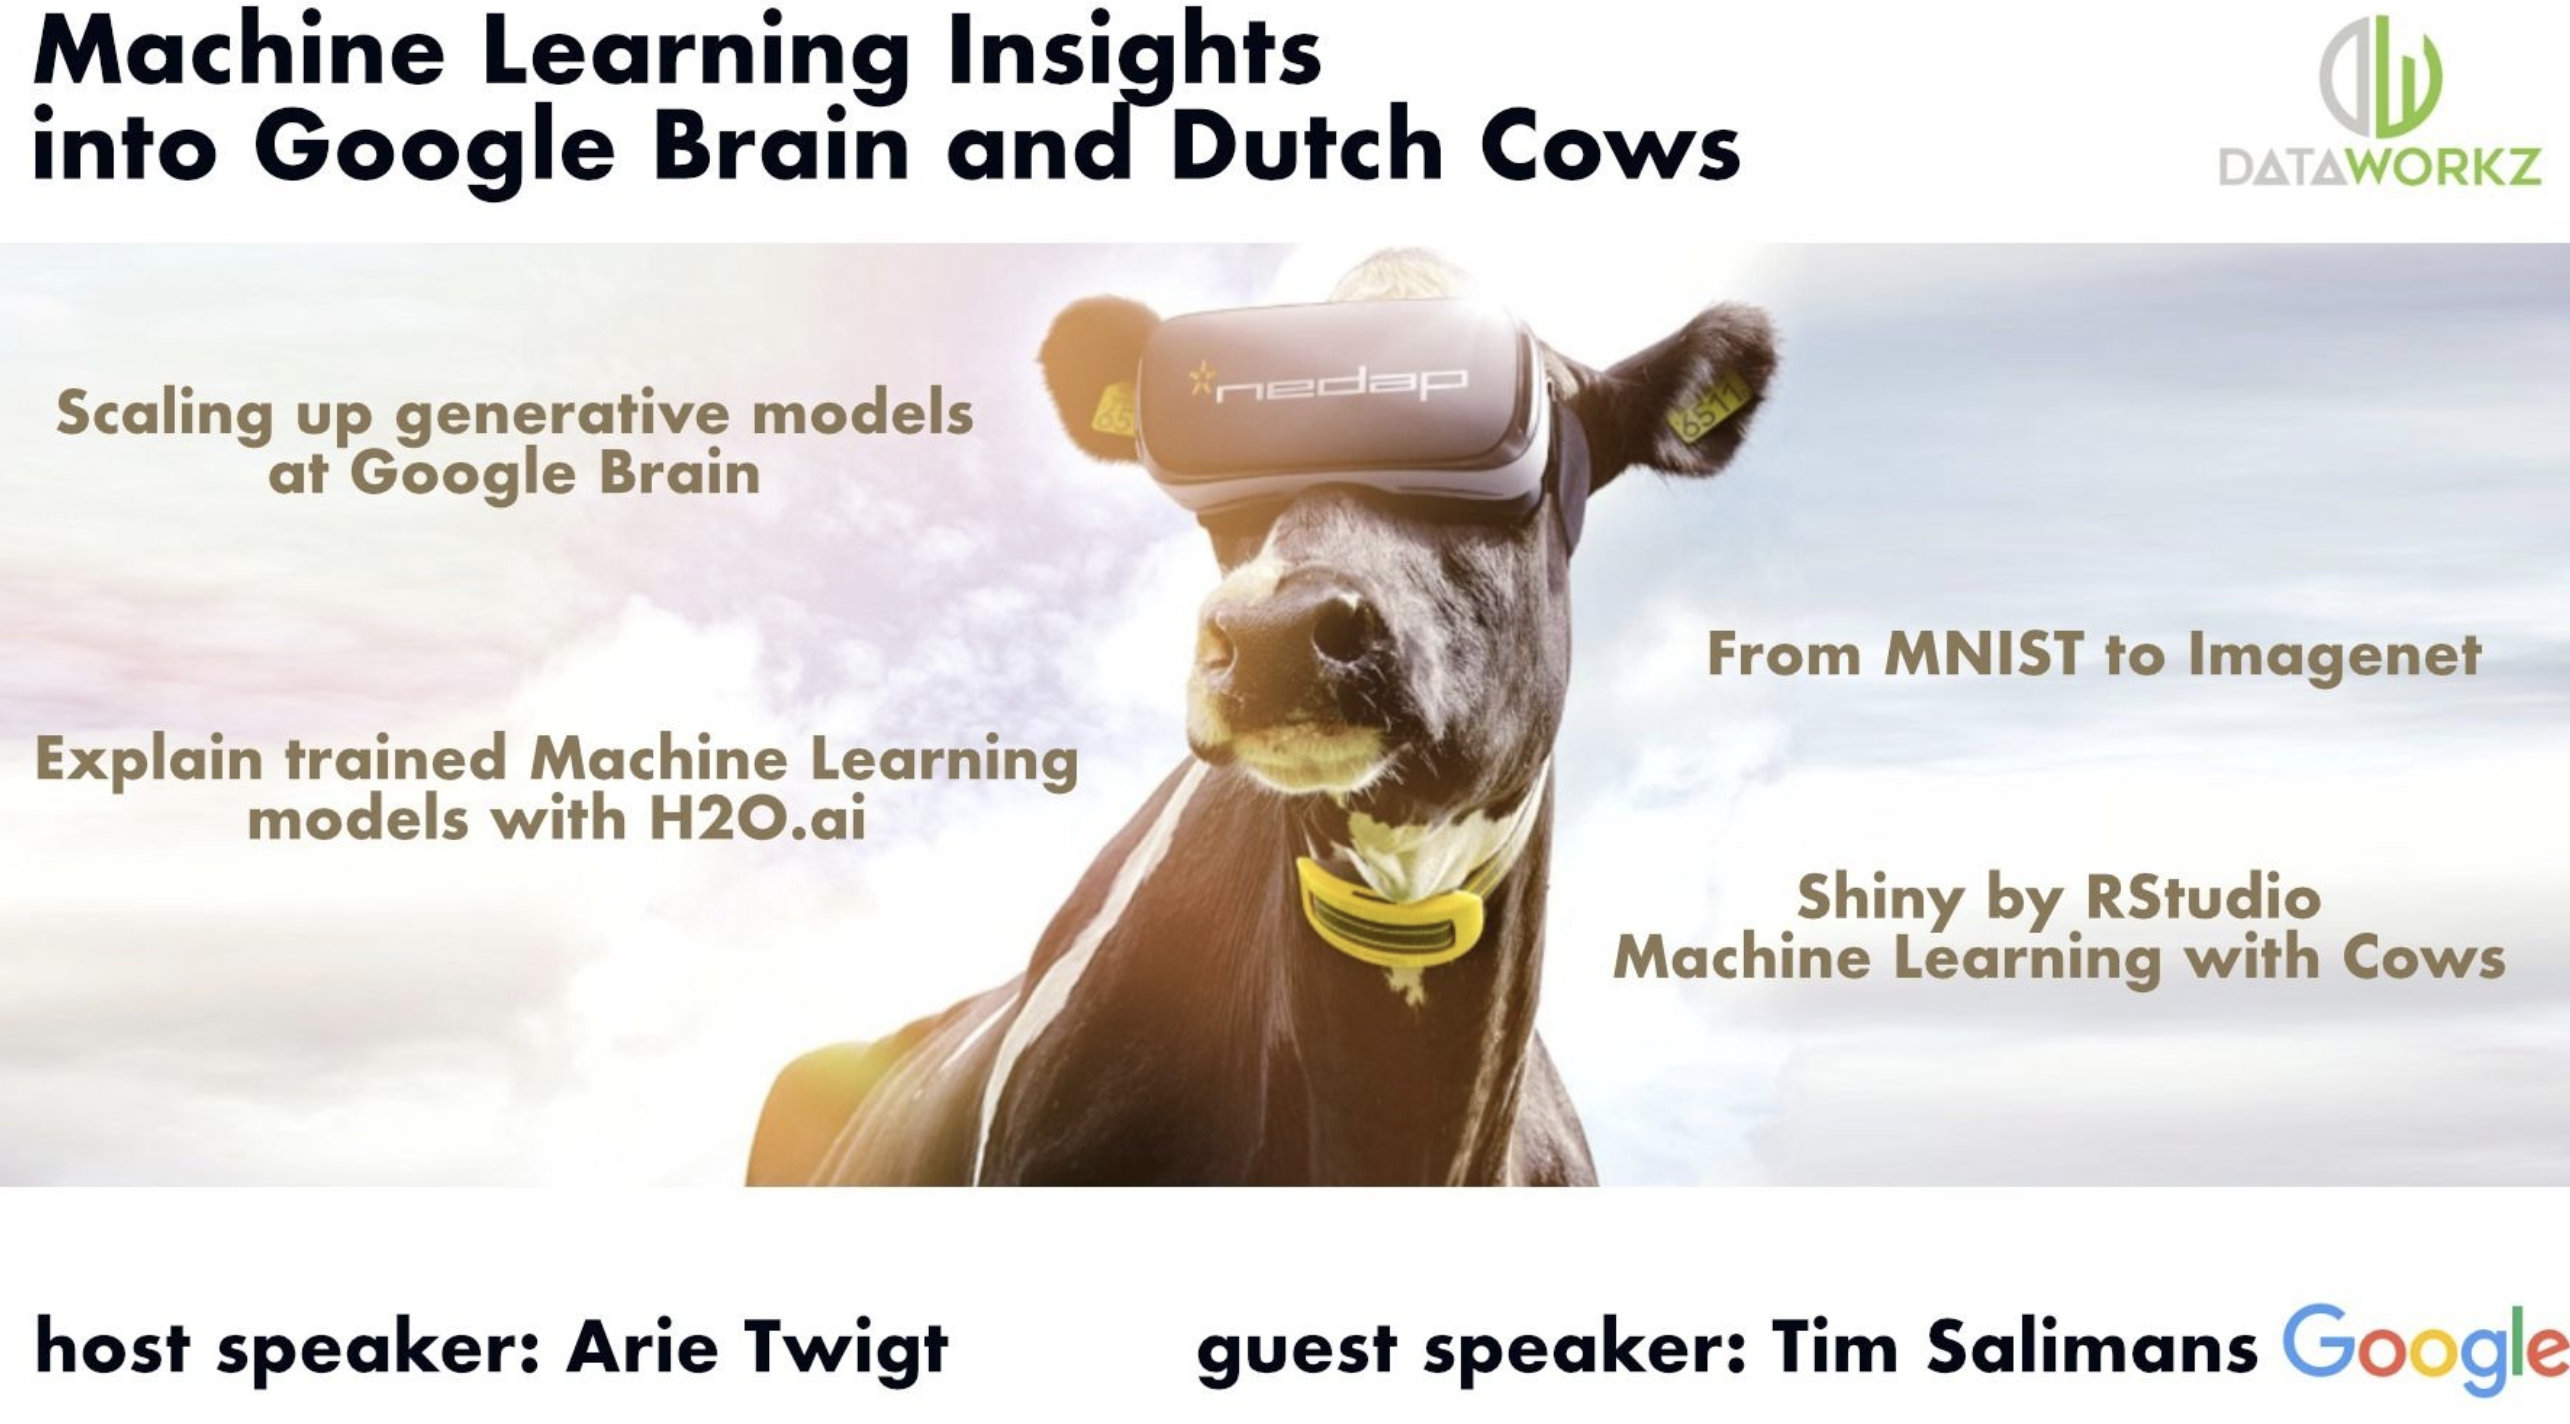 Machine Learning Insights into Google Brain and Dutch Cows